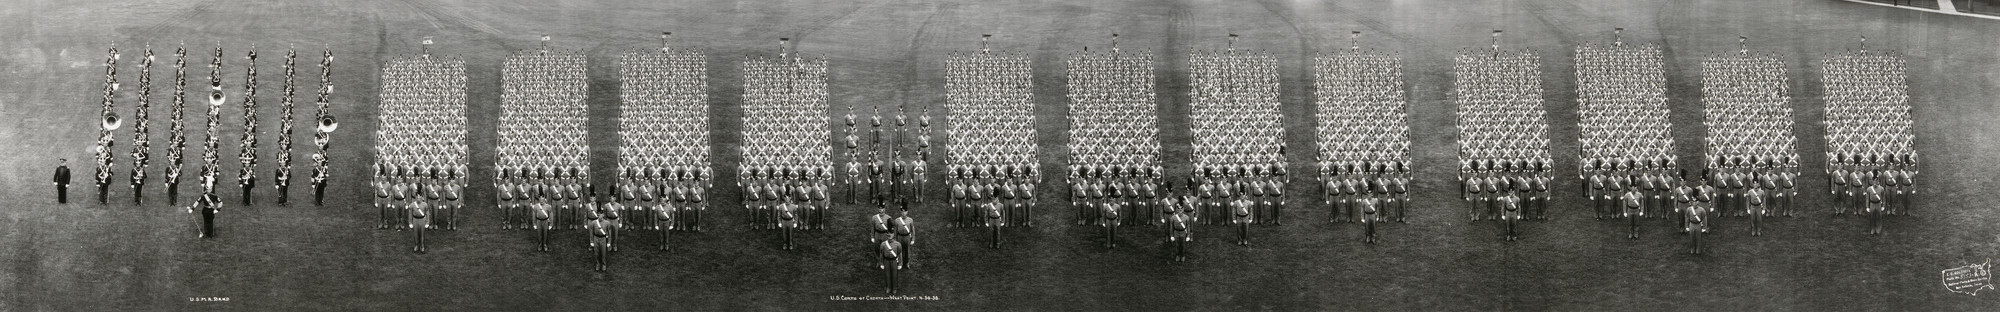 Eugene Omar Goldbeck. U.S. Corps of Cadets, West Point. 1938